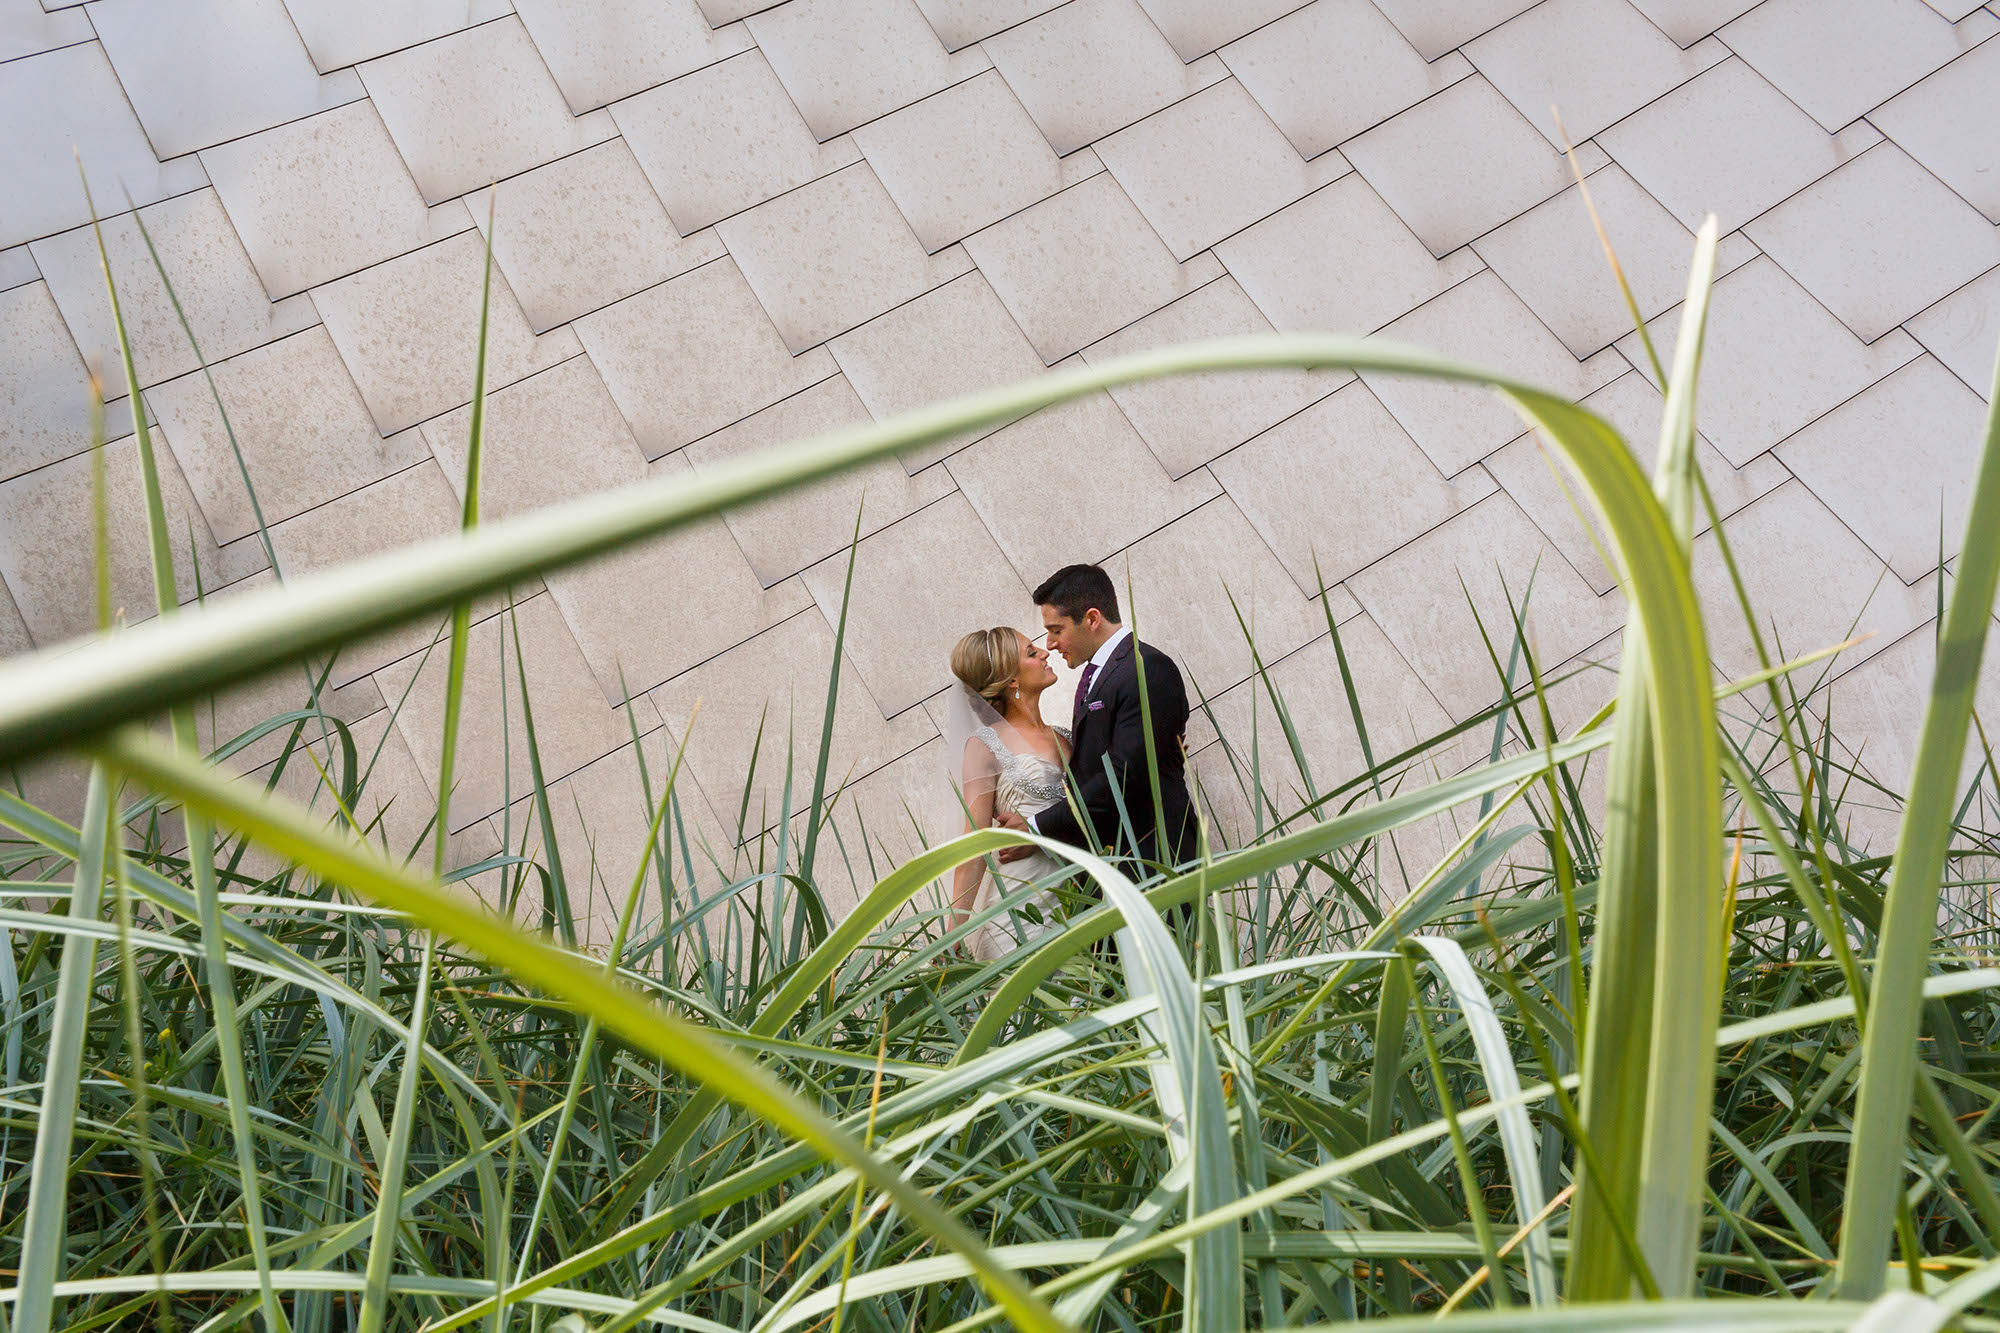 Newlyweds standing in each other's arms shot though blades of grass on the grounds of the Peter B. Lewis building designed by Frank Gehry in Downtown Cleveland, Ohio.